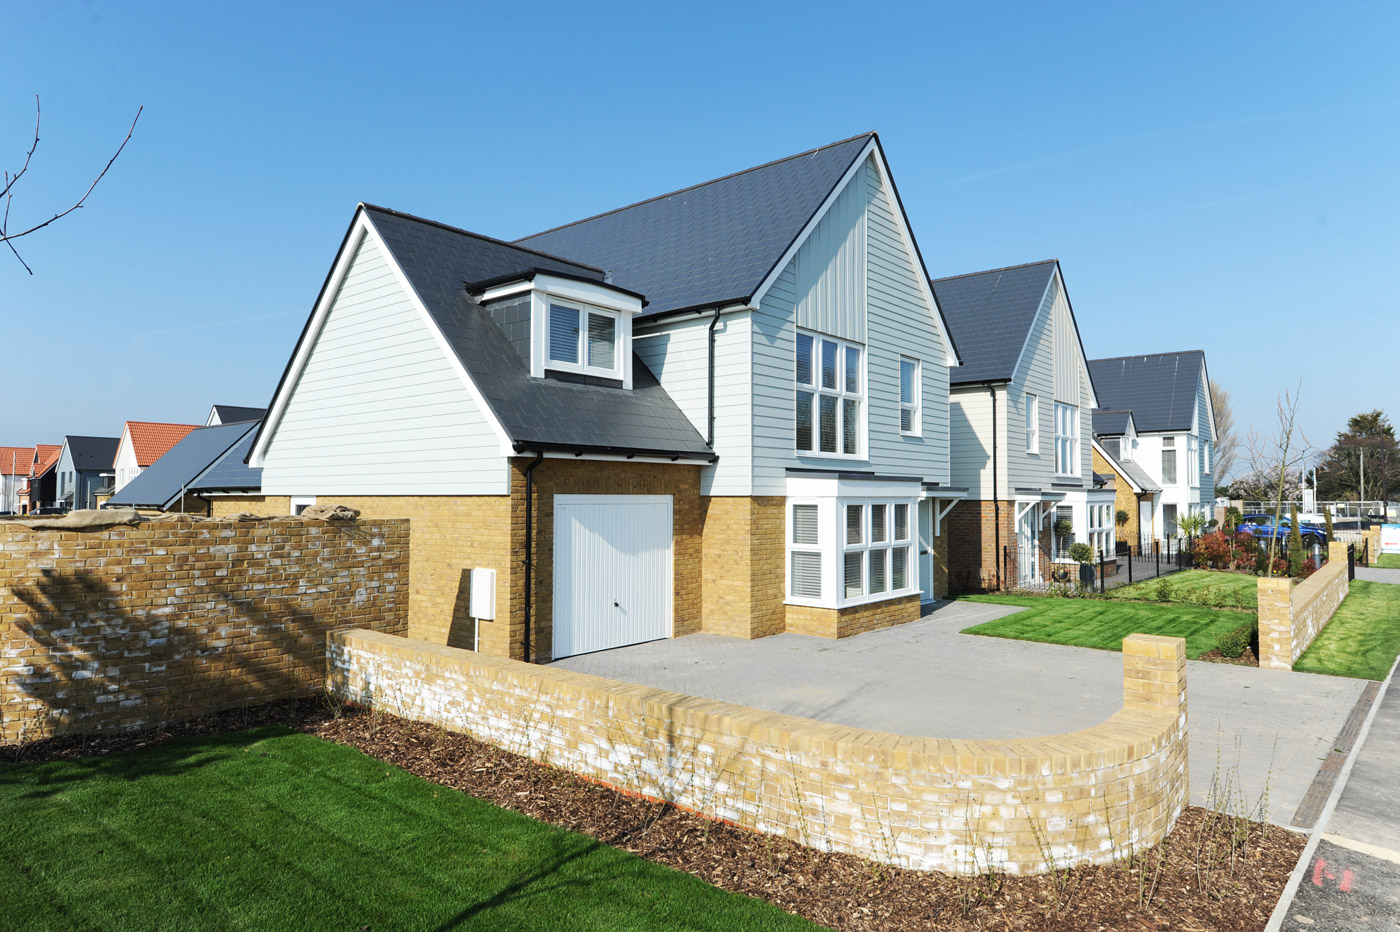 Pentland Homes Announces the Third Phase of Mulberry Place